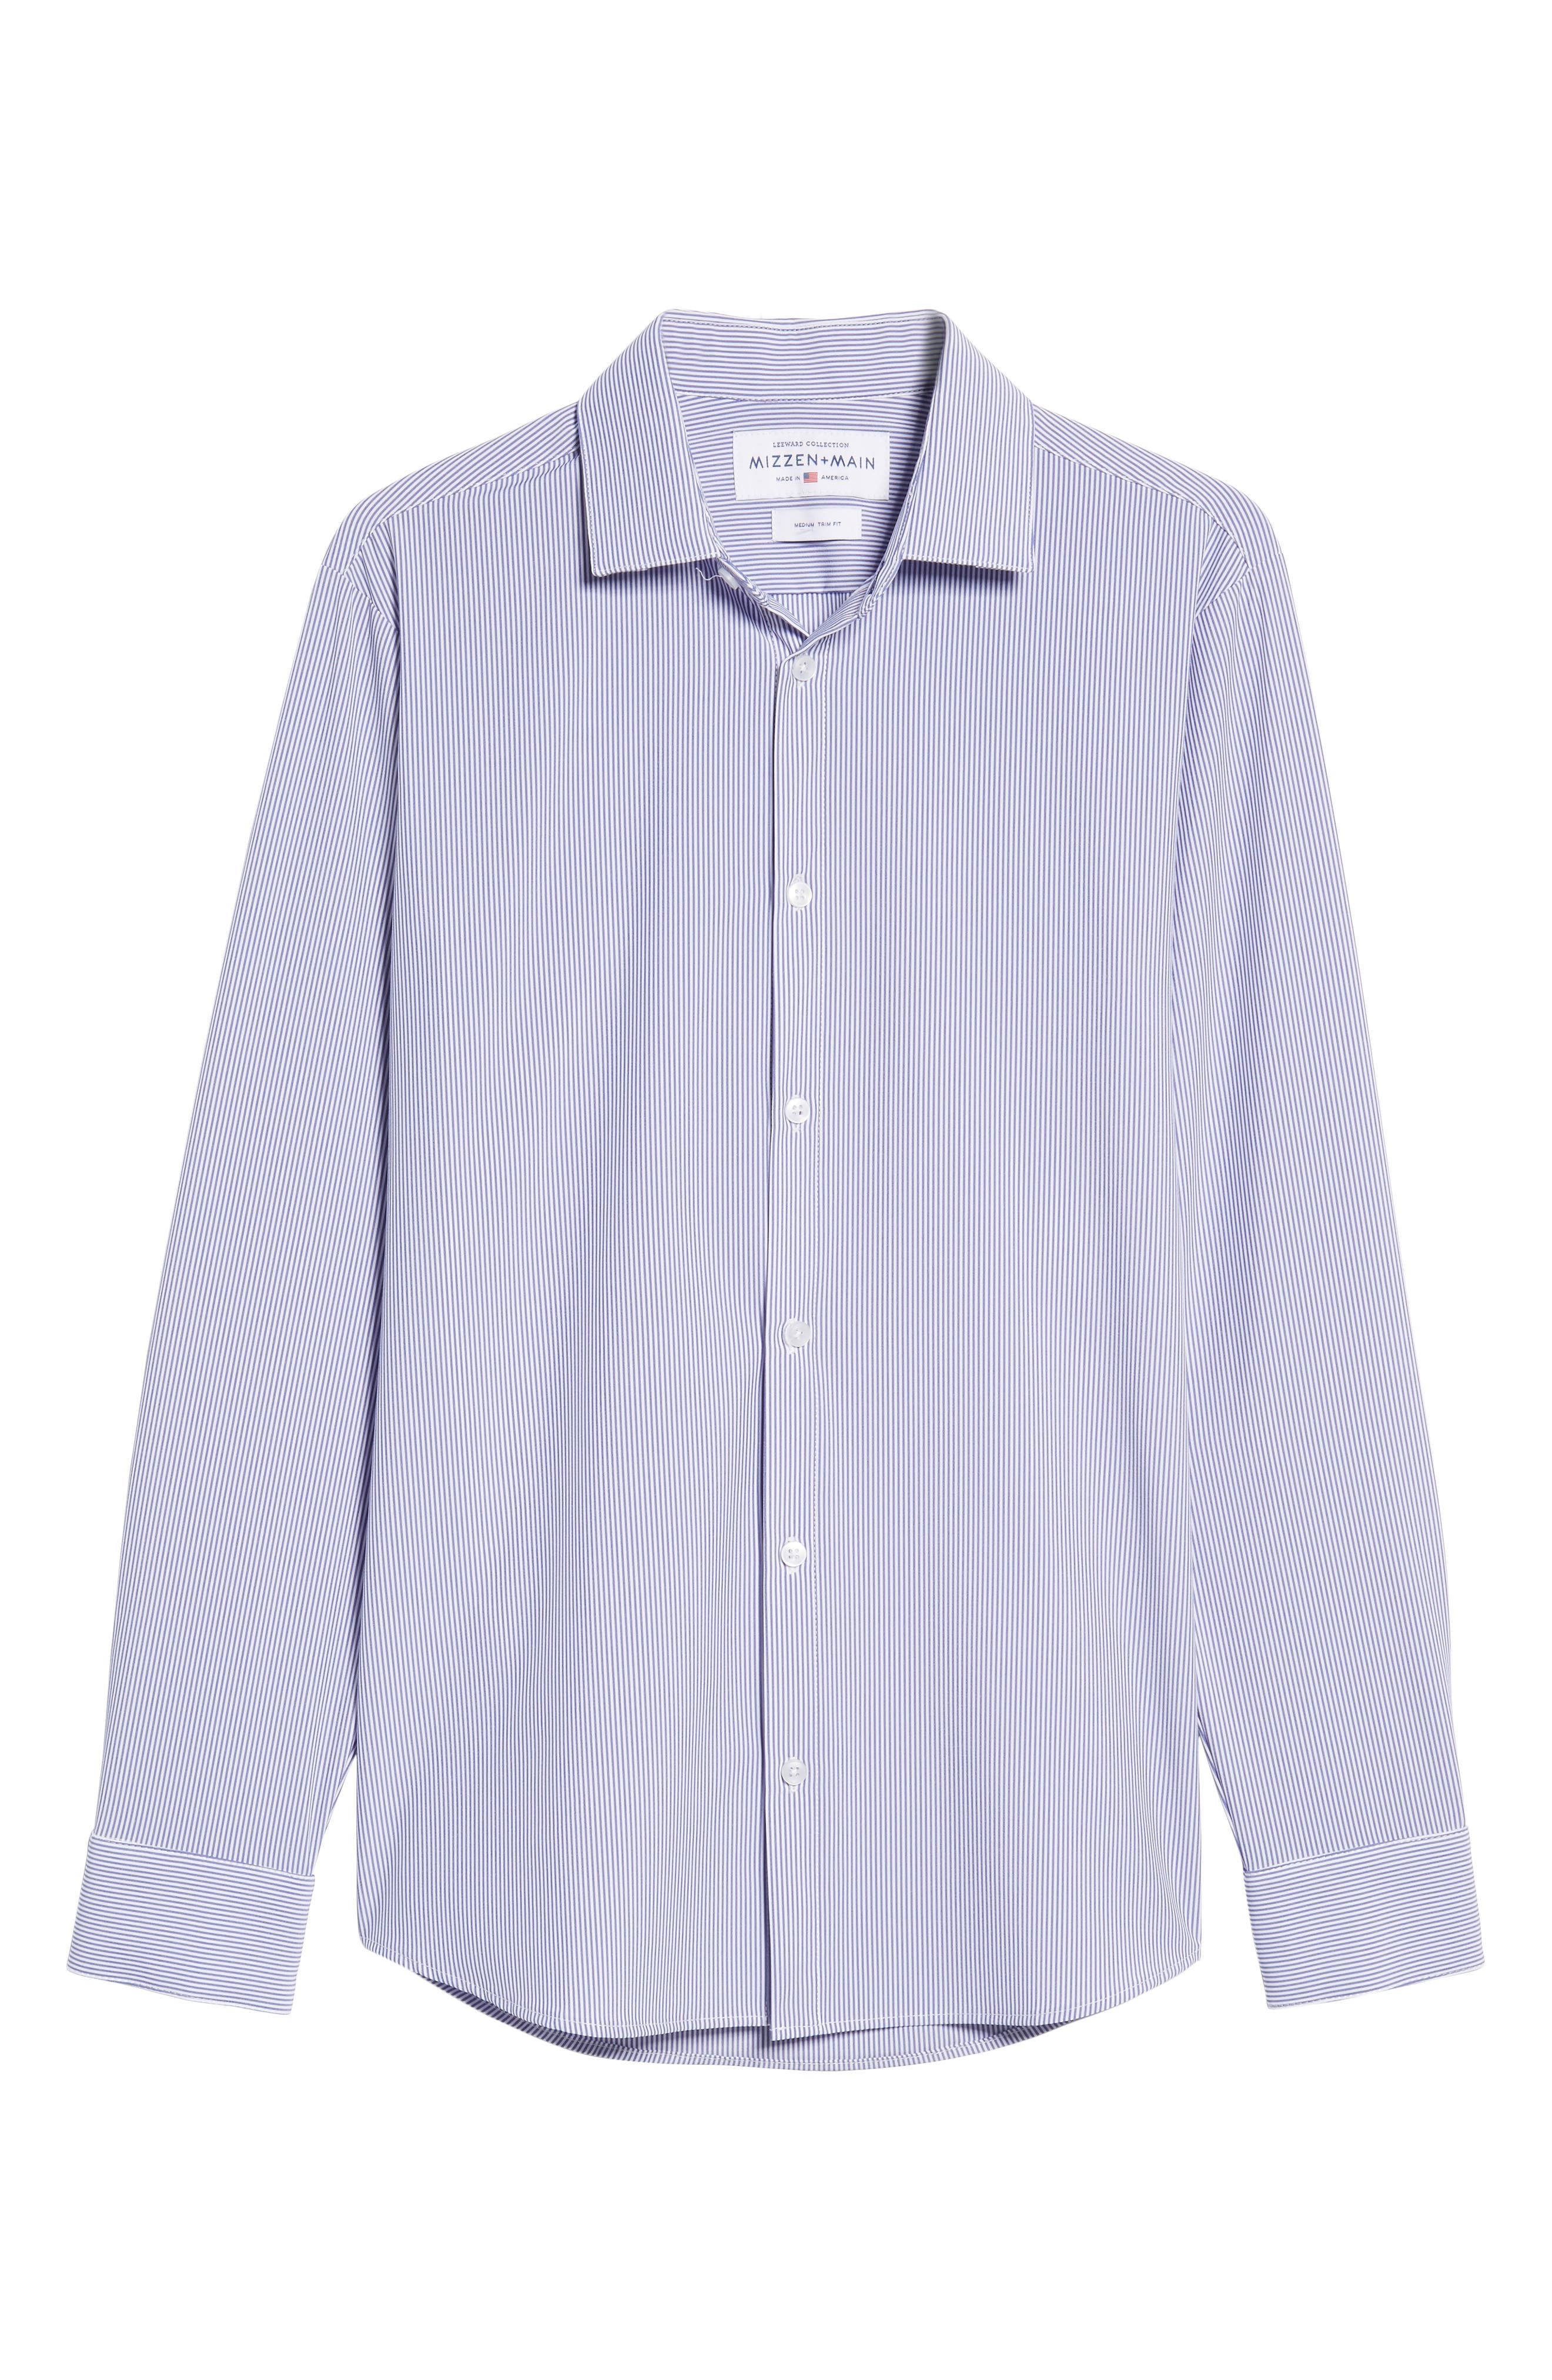 Newport Pinstripe Sport Shirt,                             Alternate thumbnail 6, color,